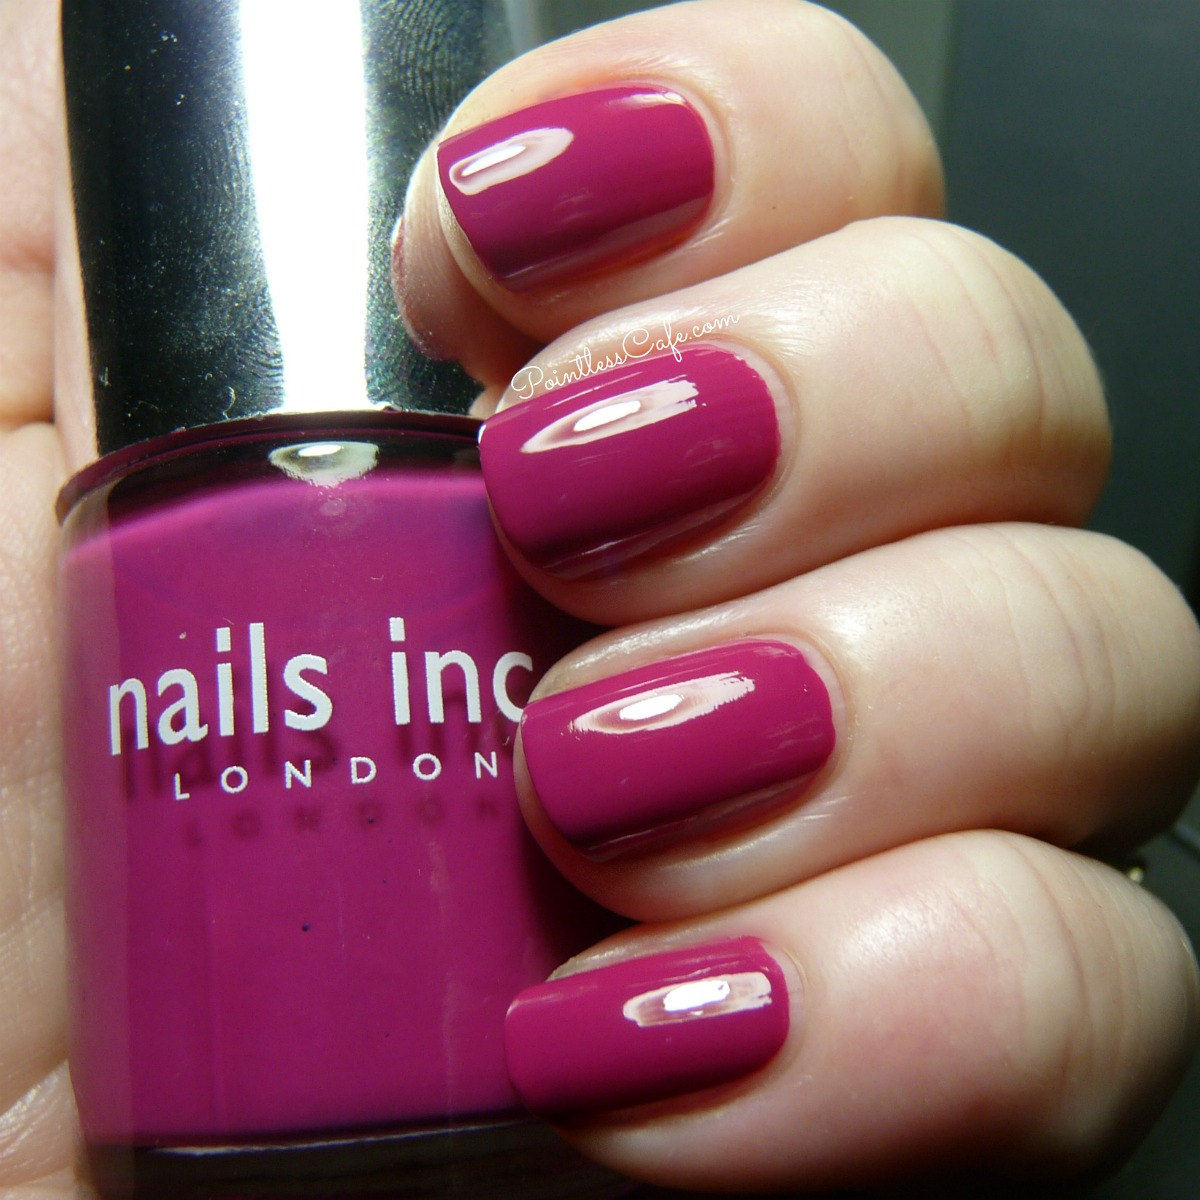 of Course Nails Inc is a uk